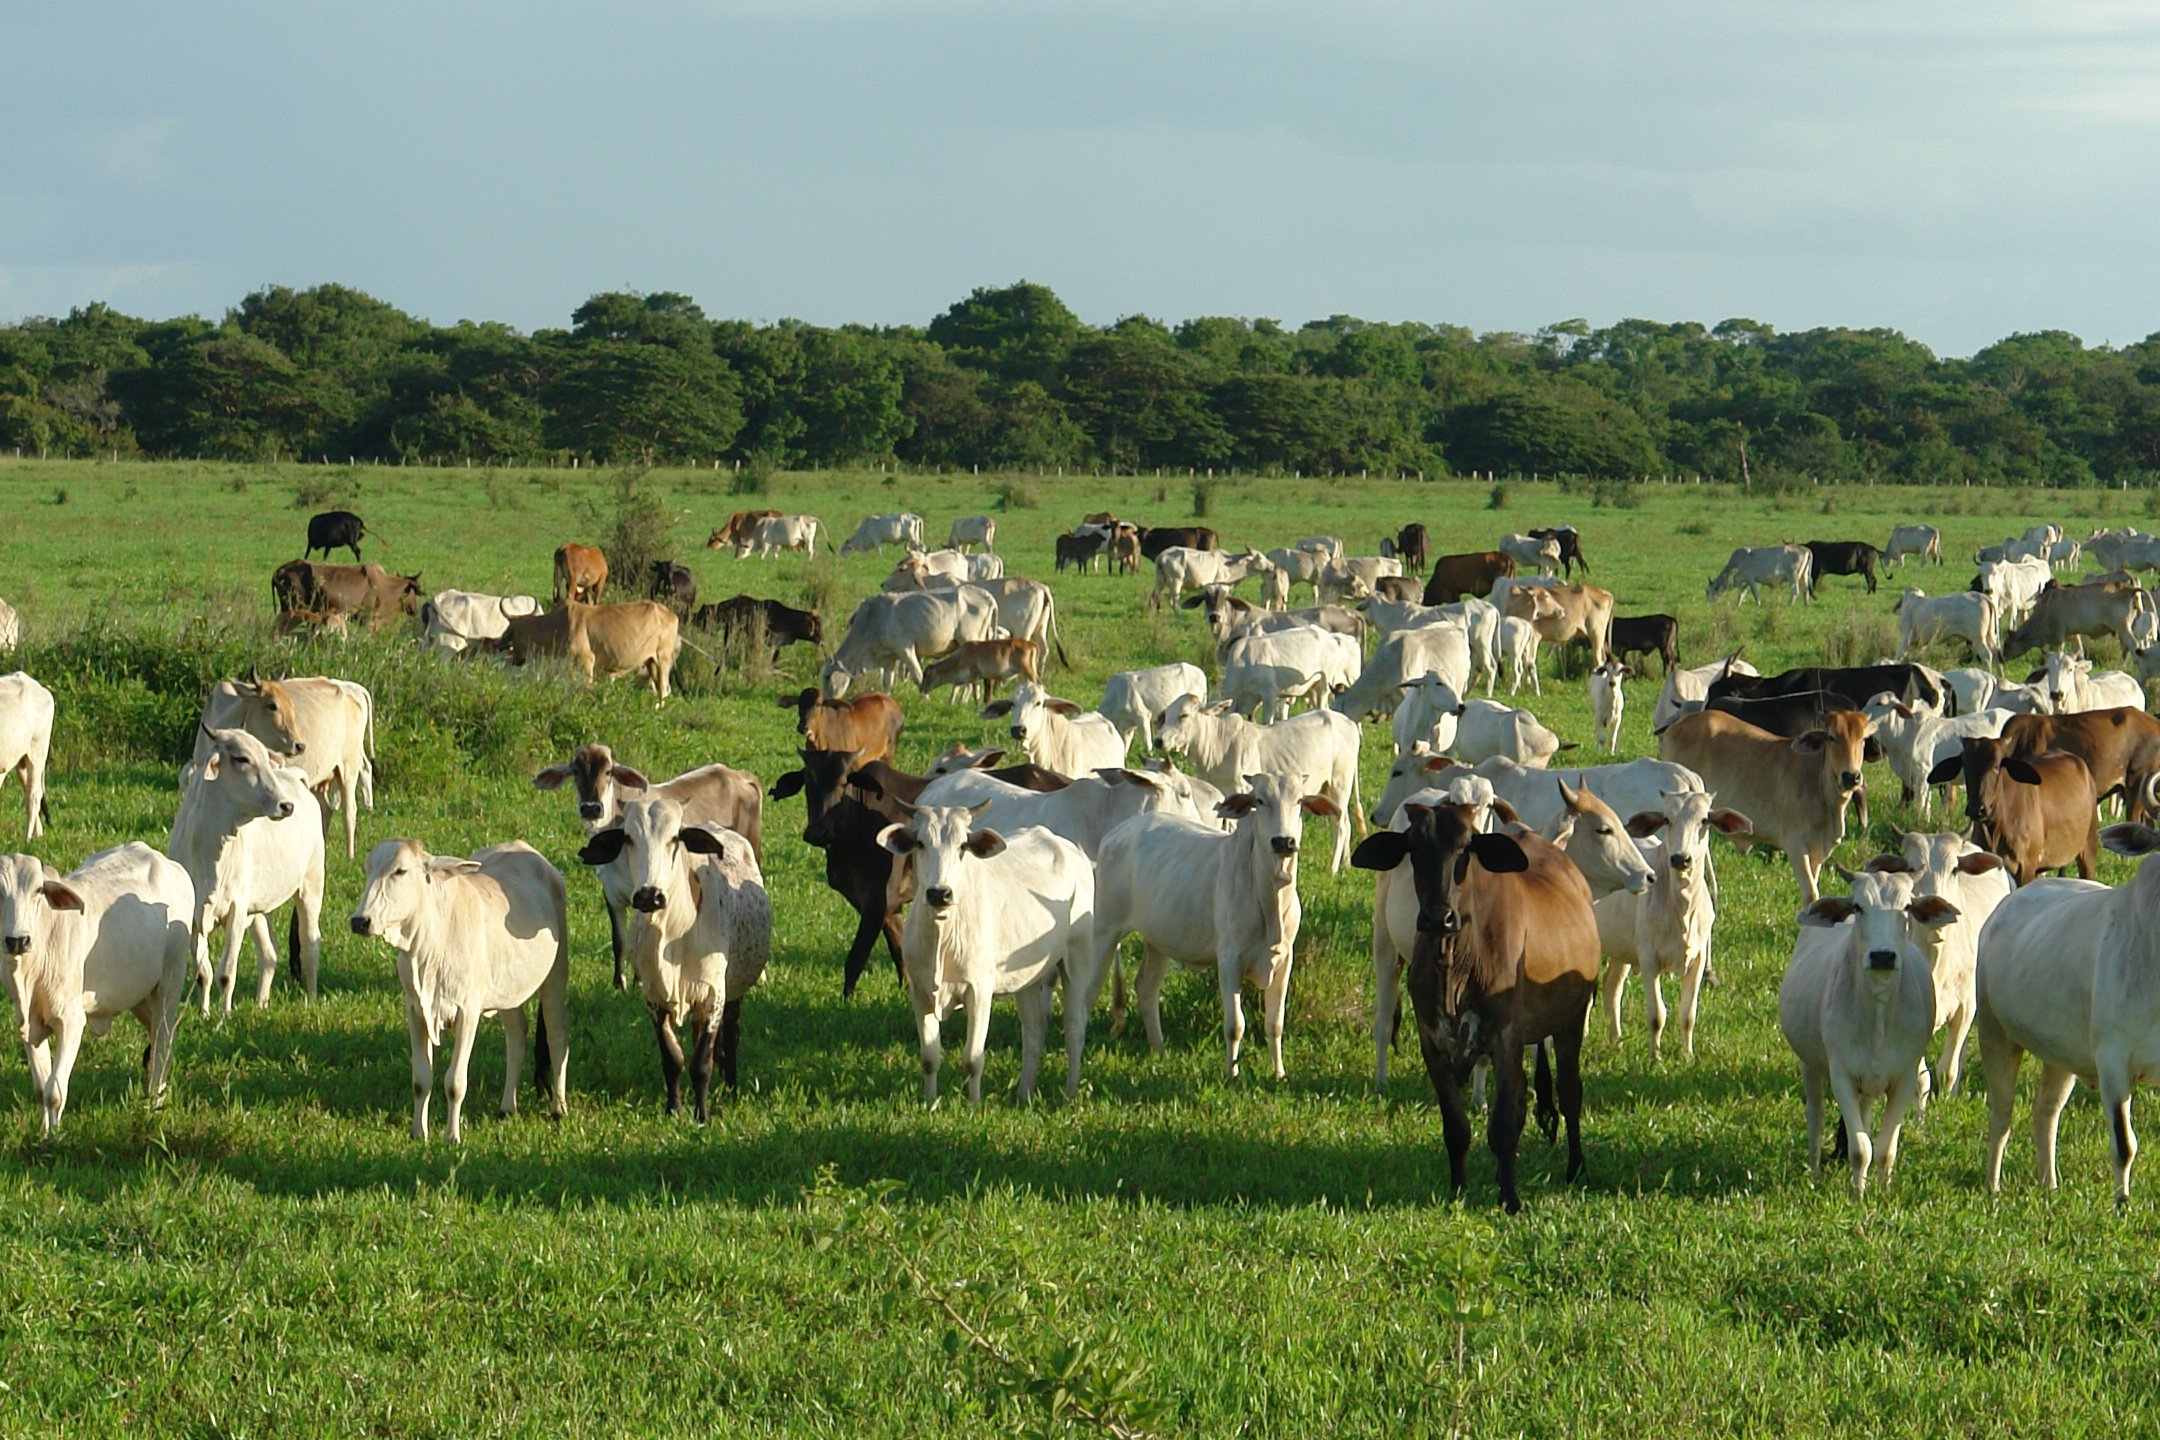 Cattle in a pasture.